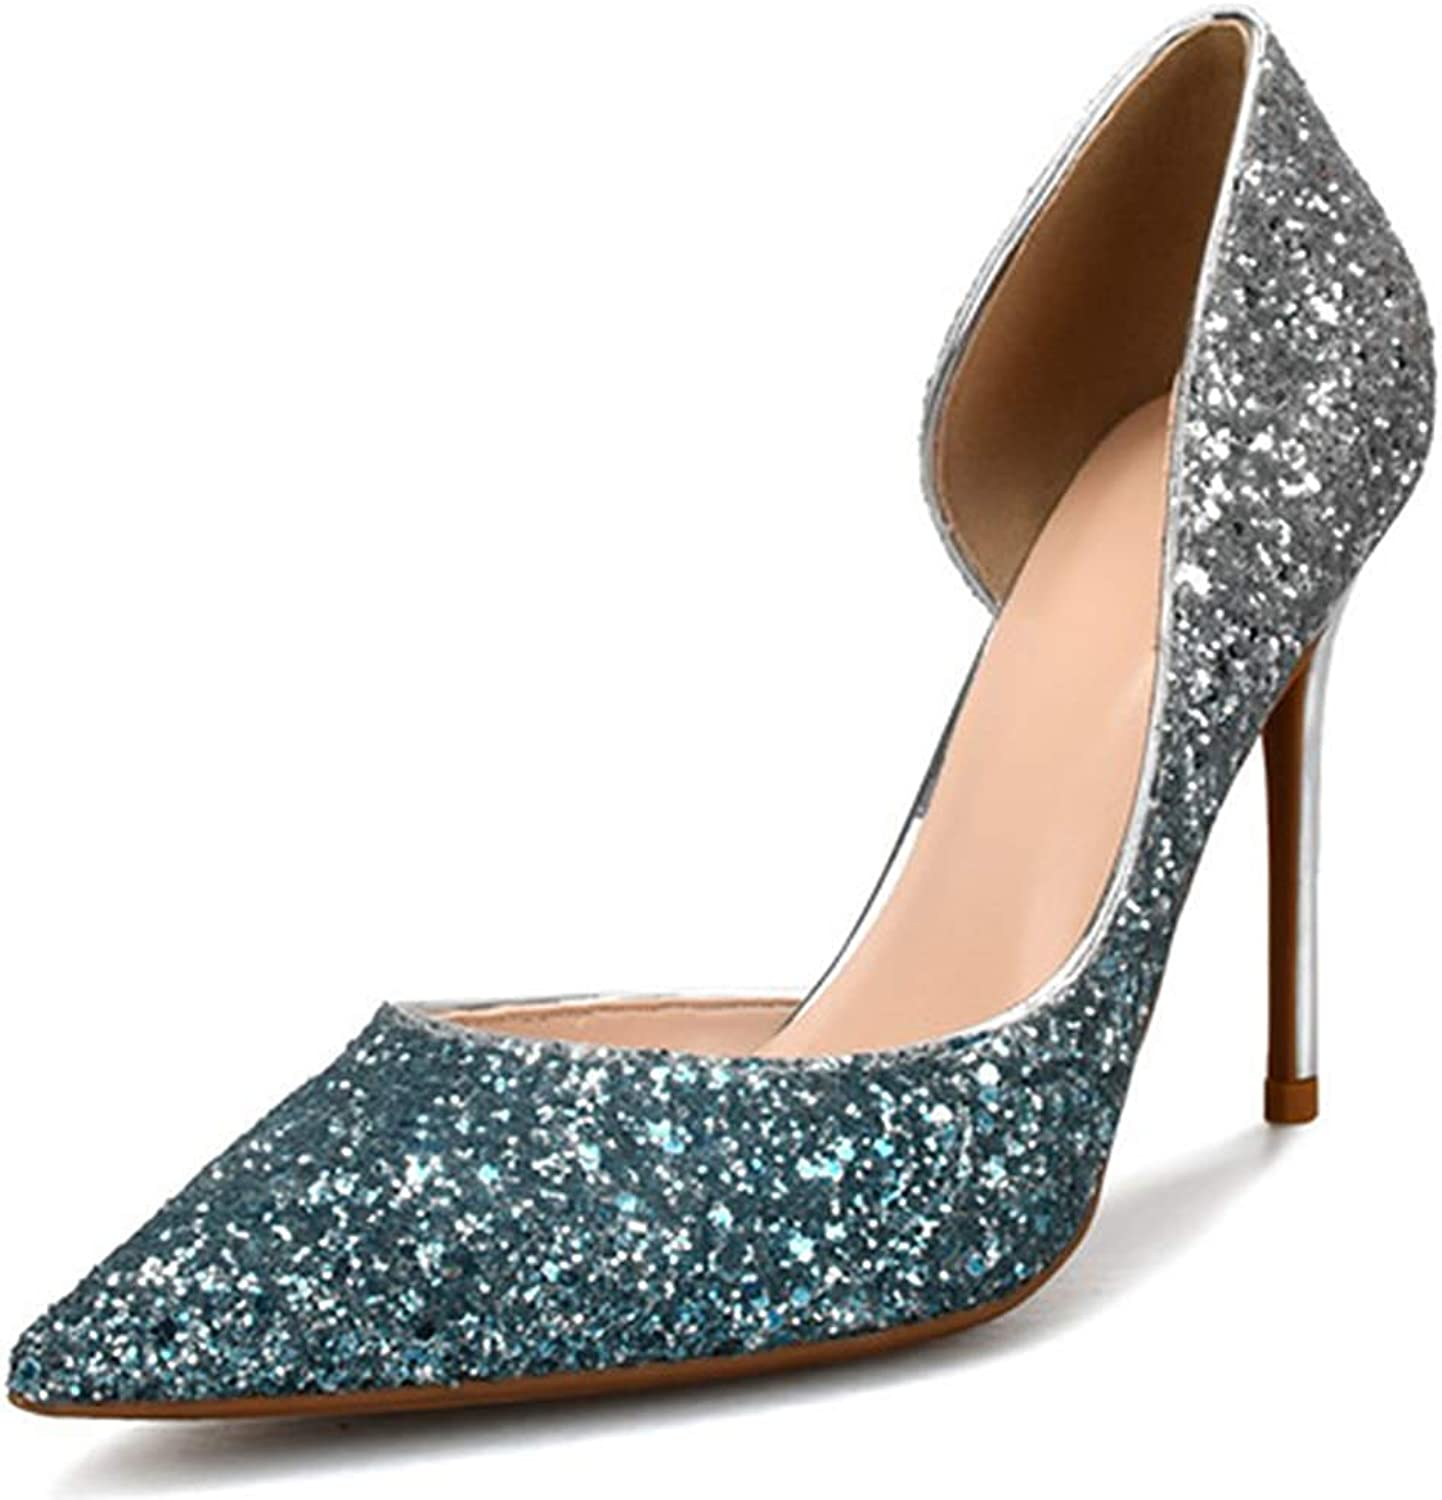 Lelehwhge Women's Sexy Sequins Pointed Toe Stiletto Heels Slip On D'Orsay Pumps shoes Purple and gold 3 in 7.5 M US